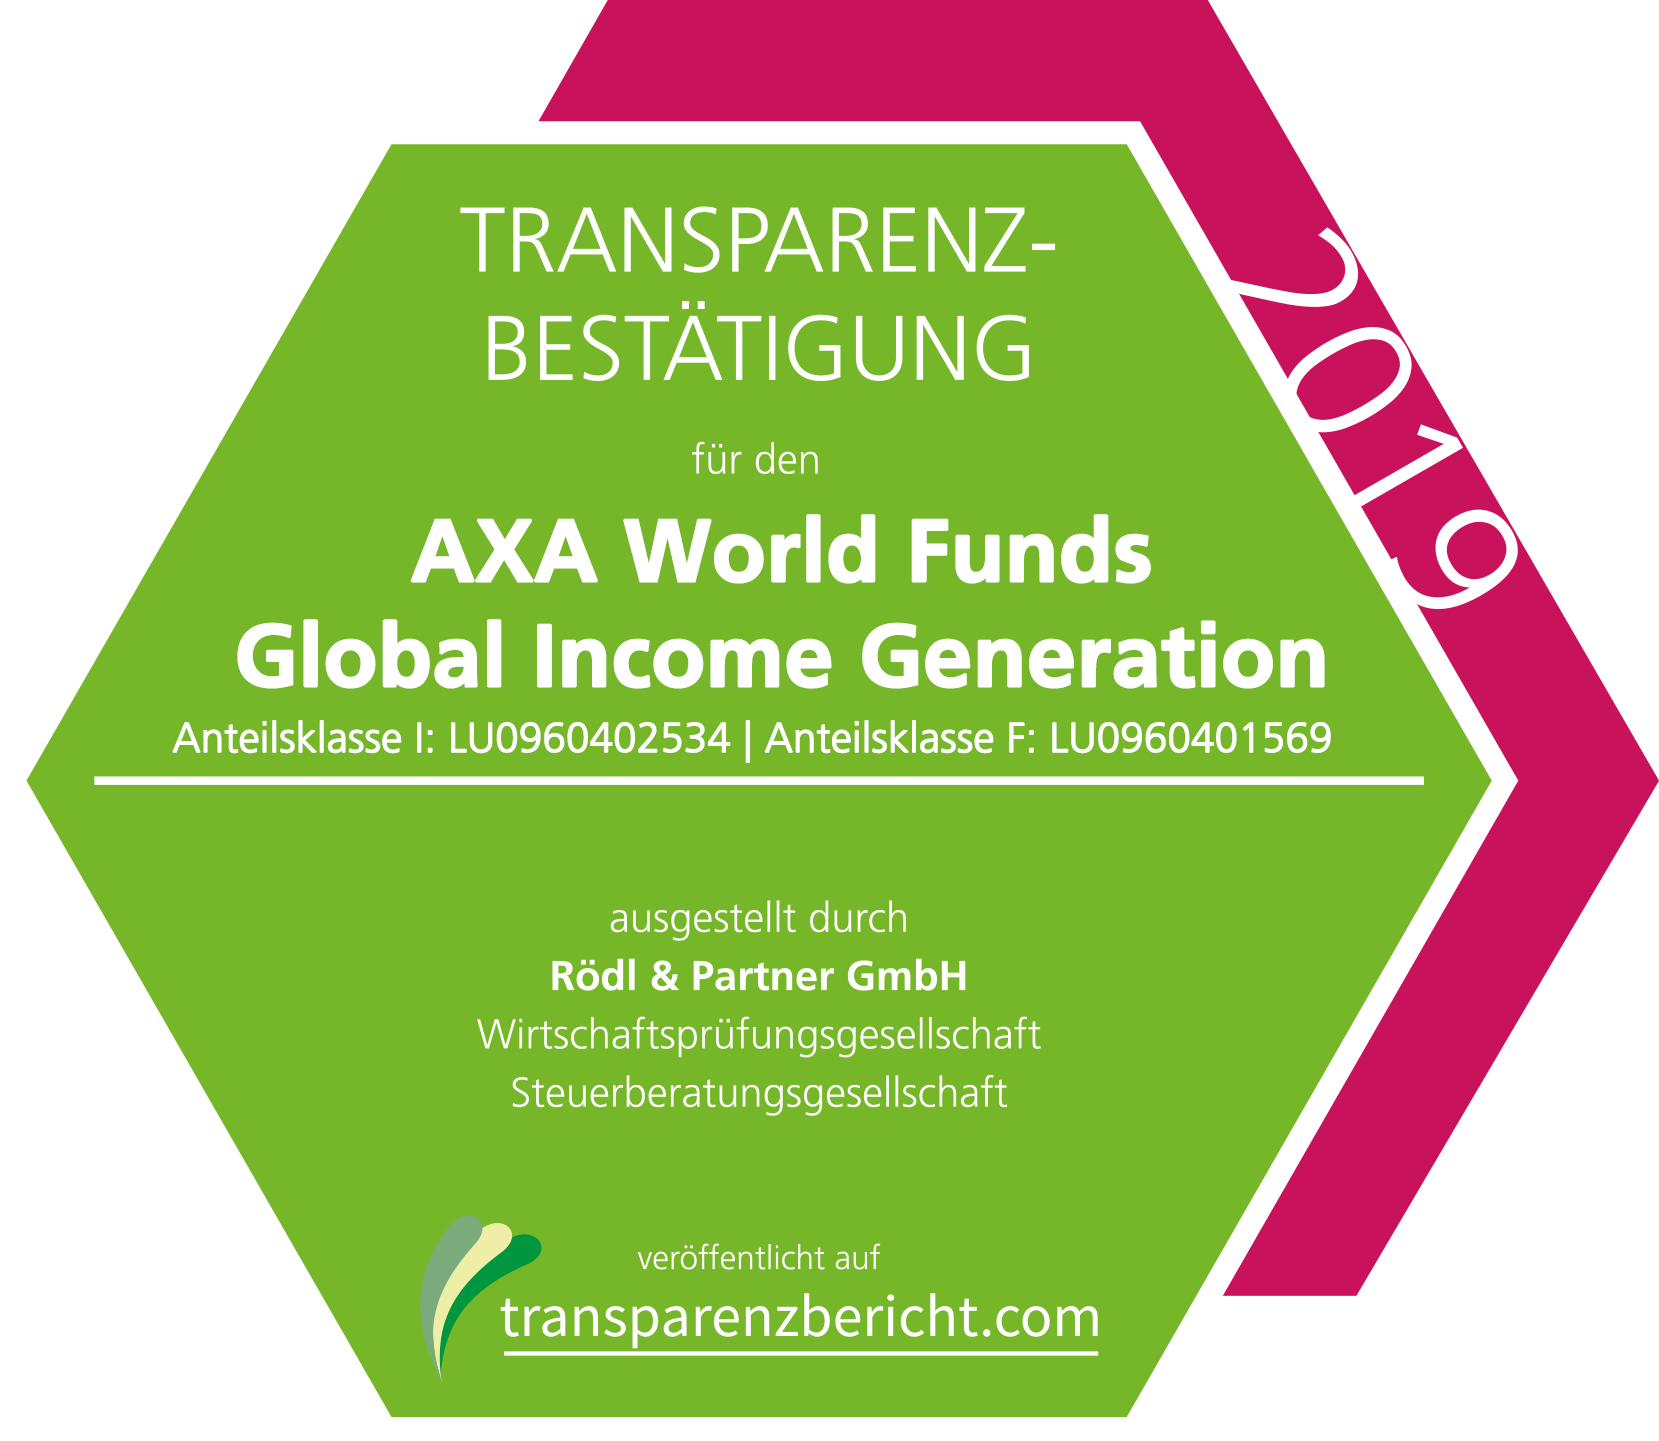 AXA World Funds Global Income Generation 2019